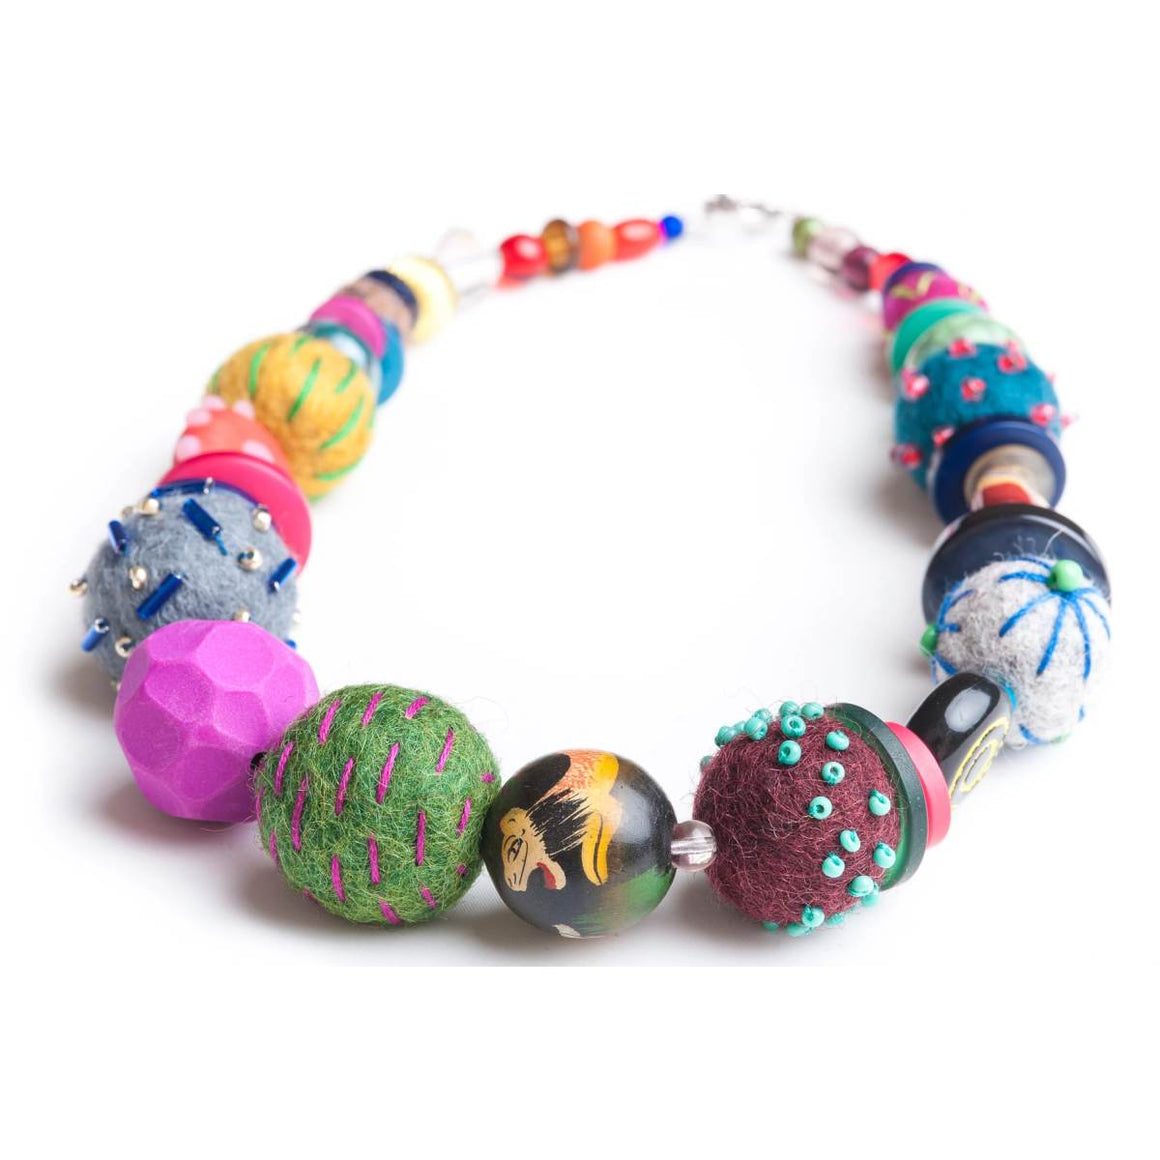 Necklace | Multicolour Mixed Media Chunky Felt Beads | Syrah Jay